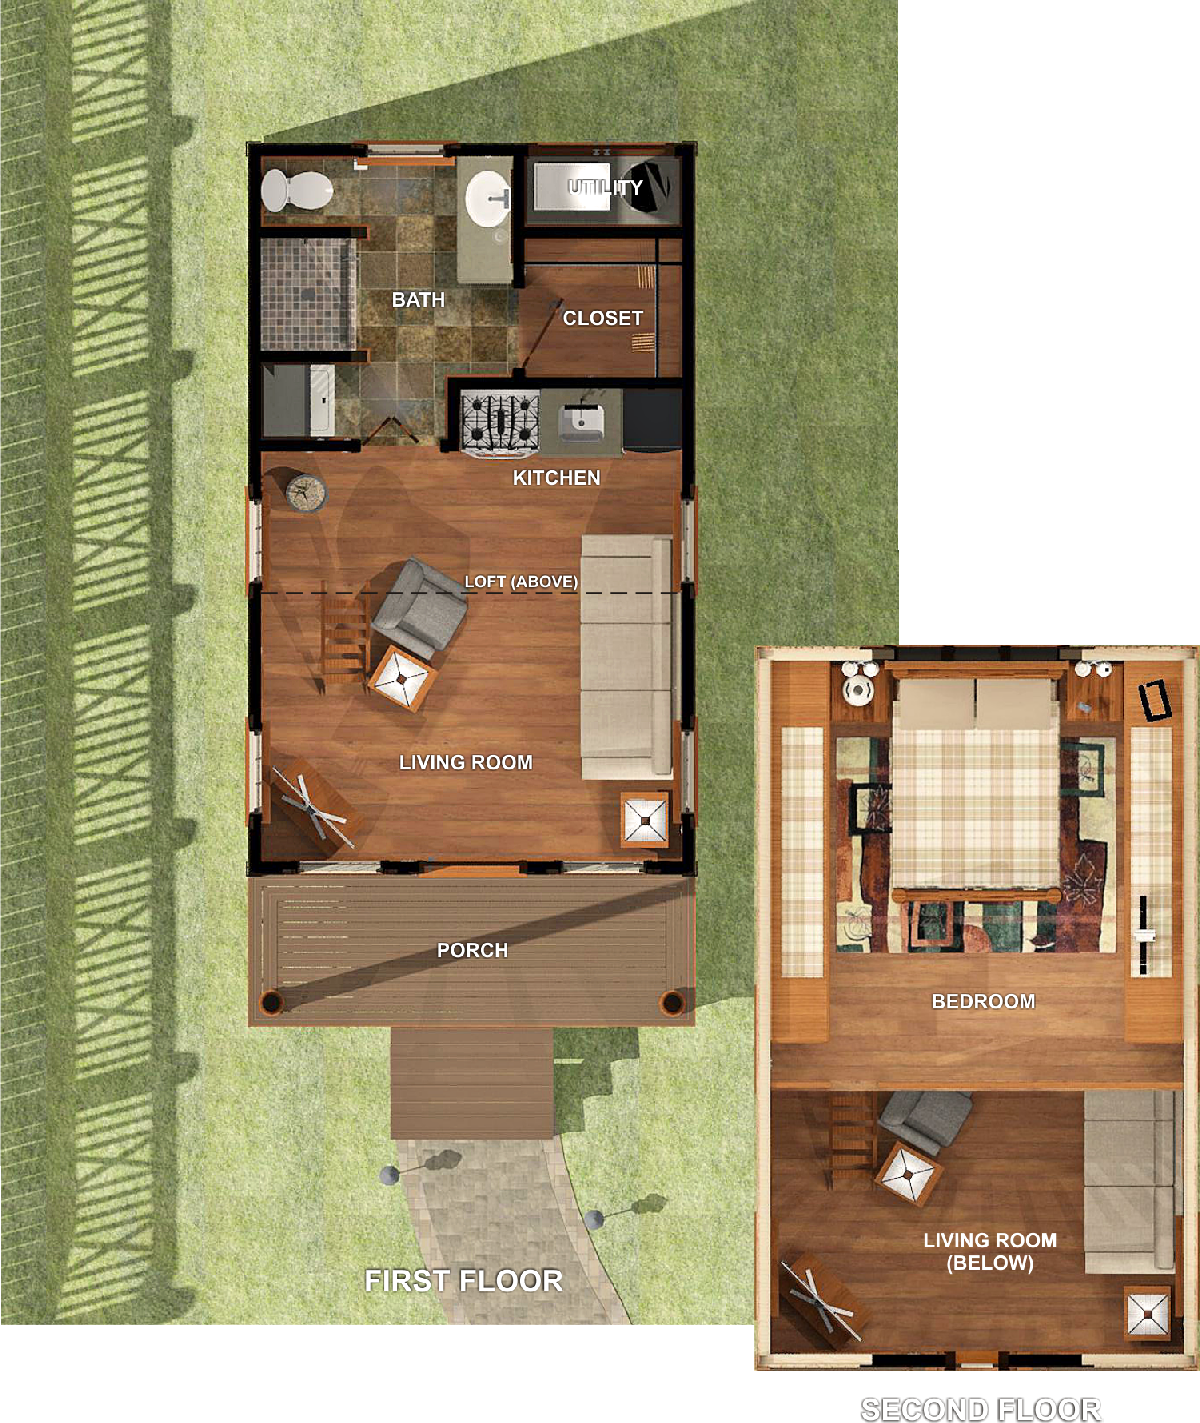 Surprising Texas Tiny Homes Plan 448 Largest Home Design Picture Inspirations Pitcheantrous